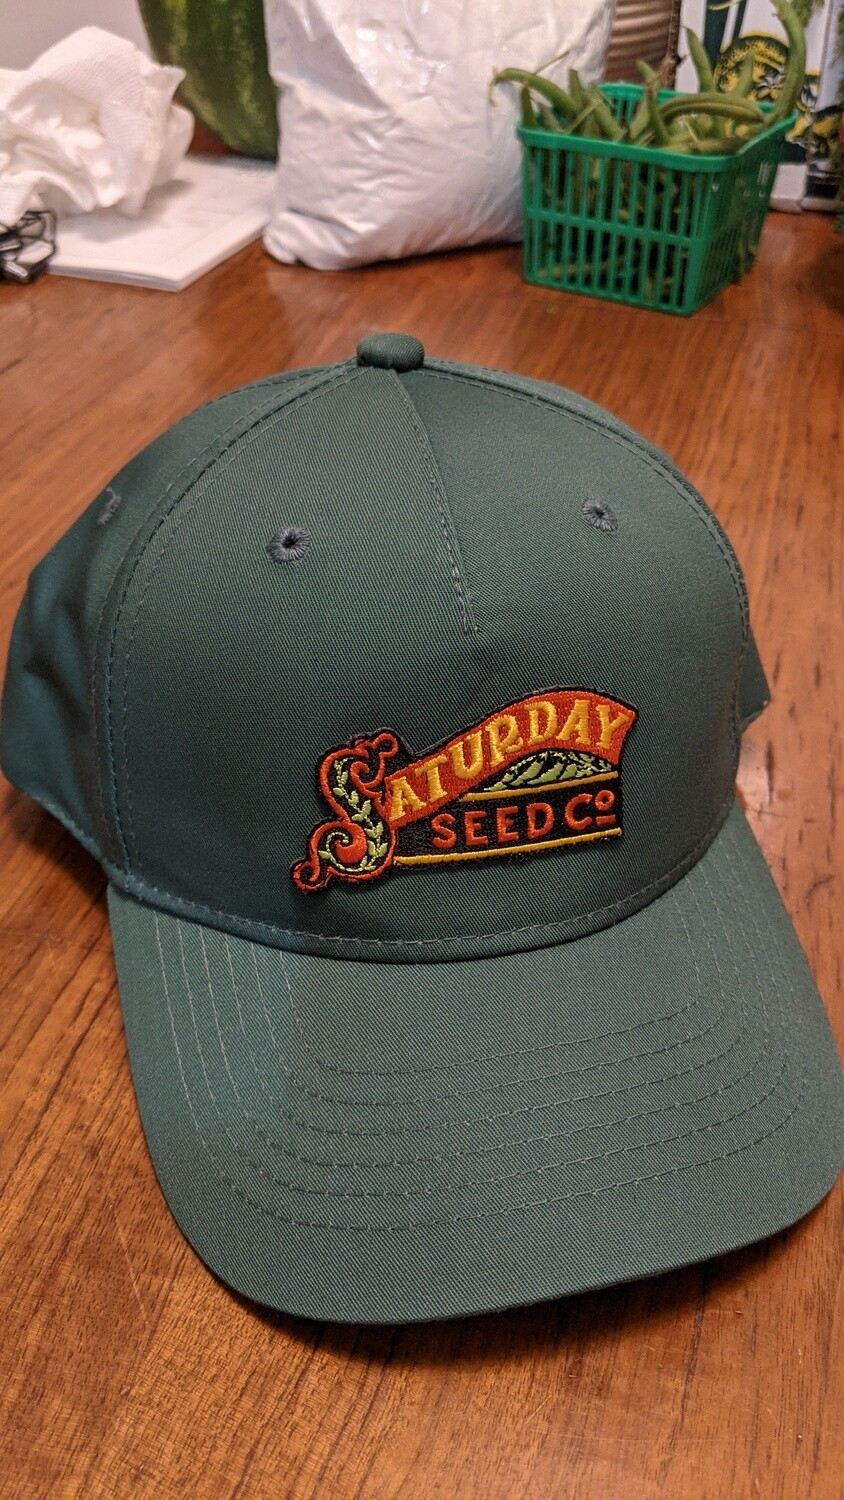 Green Saturday Seed Co. snap back hat